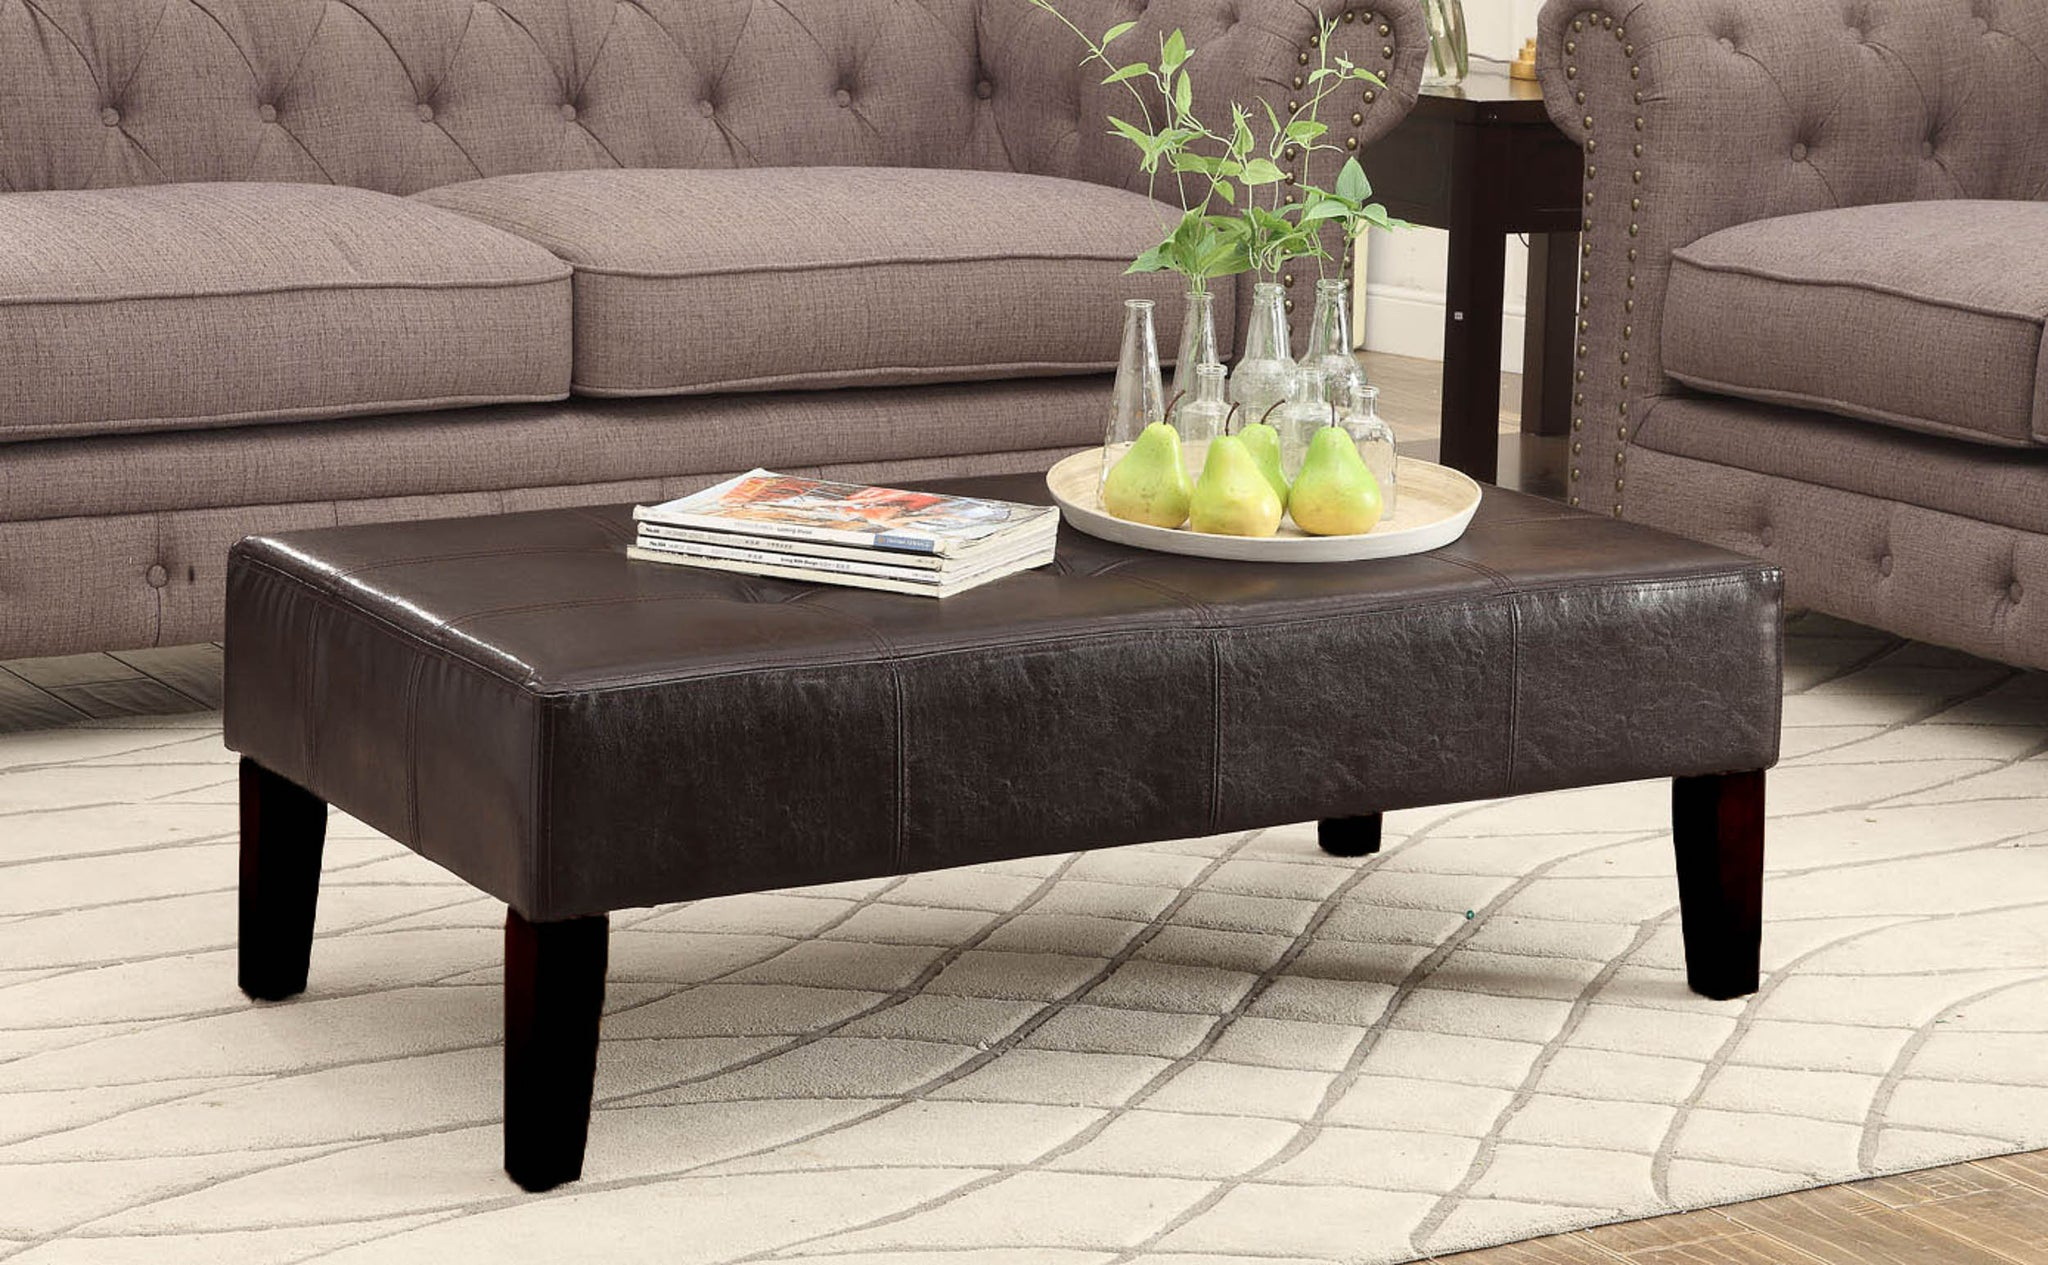 Faux Leather Coffee Table – Aspen Leaf Specialties